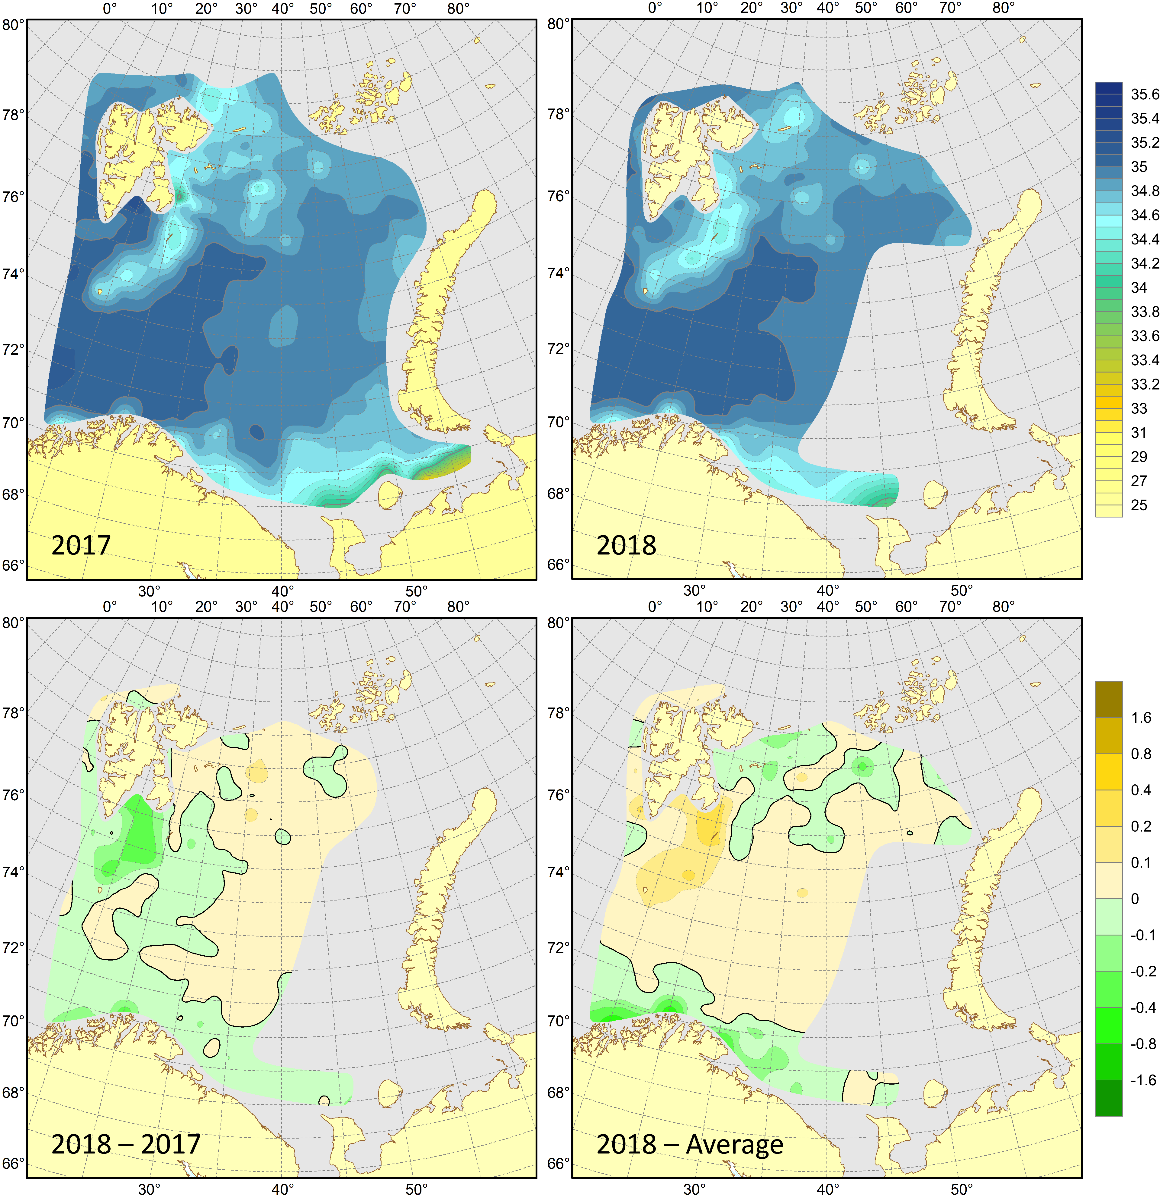 Figure 3.1.15. Bottom salinities in August–September 2017 (upper left) and 2018 (upper right), their differences between 2018 and 2017 (lower left) and anomalies in August–September 2018 (lower right).